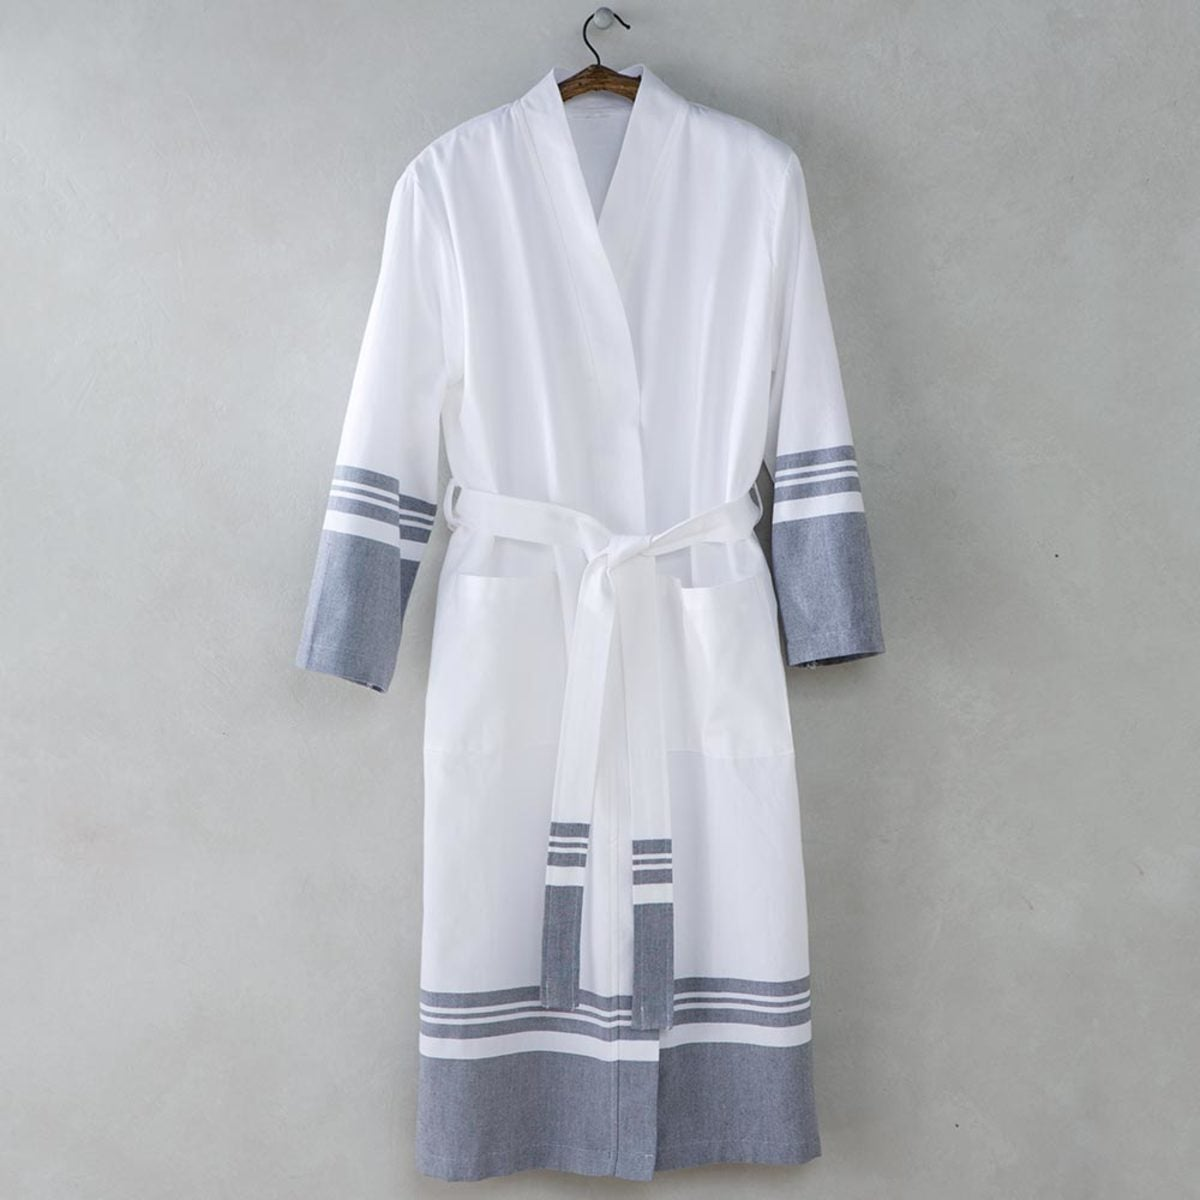 Turkish Cotton Striped Robe - Gray - L/XL (10-14)